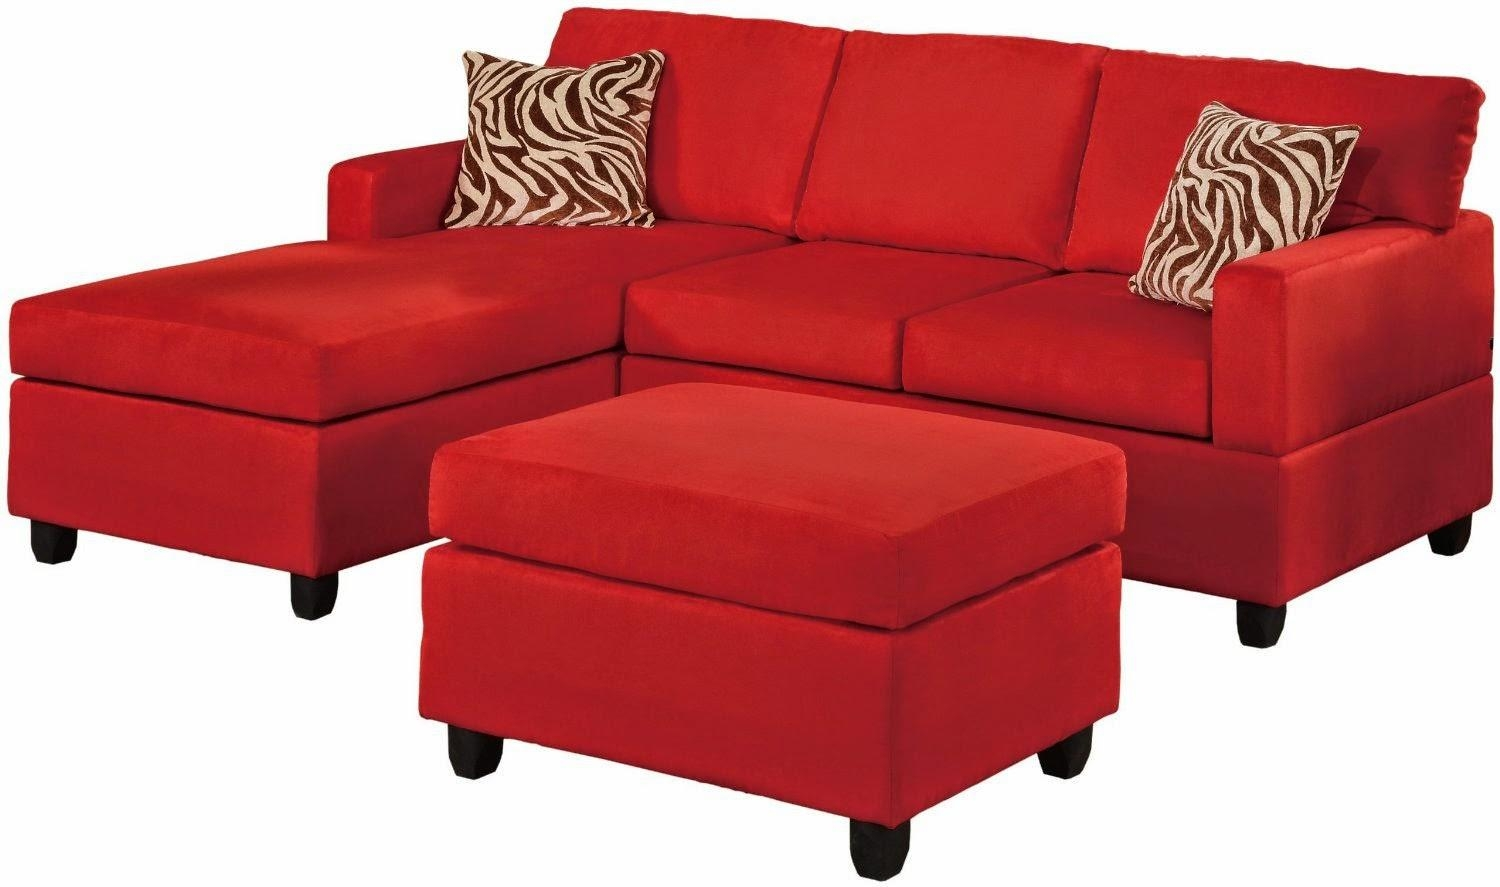 21 best ideas red microfiber sectional sofas sofa ideas for Red sectional sofas cheap